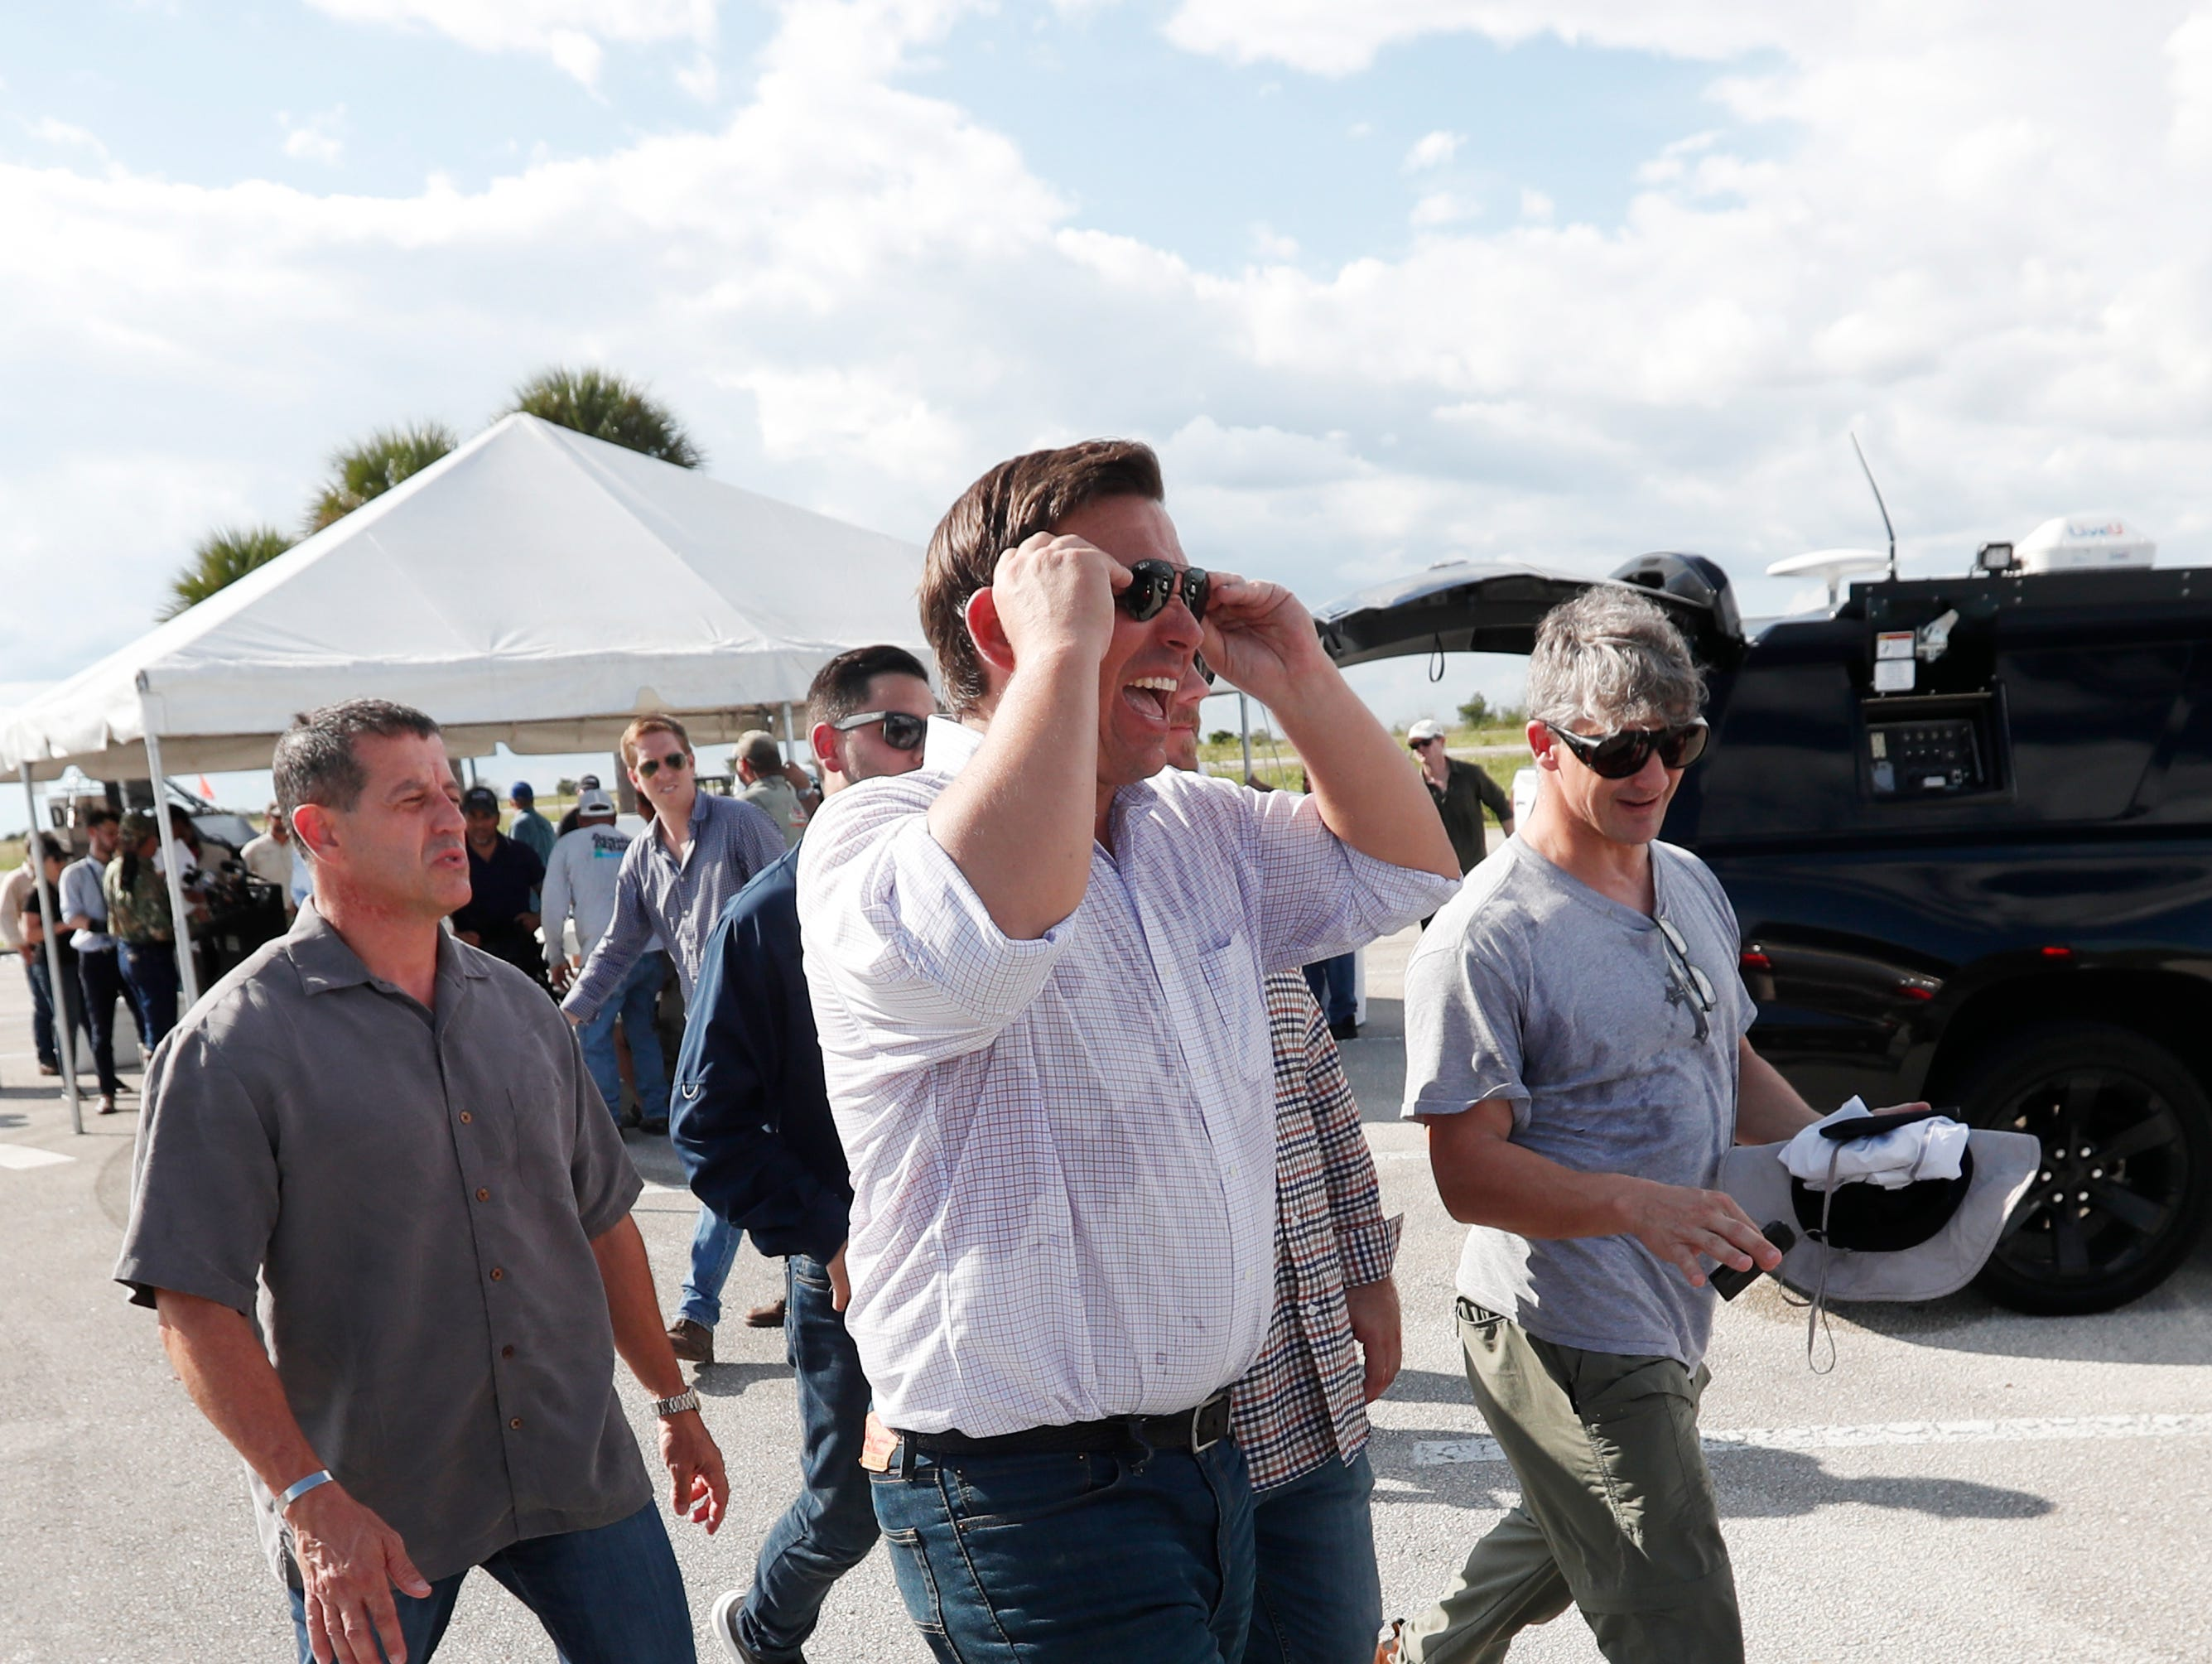 Republican candidate for Florida Governor Ron DeSantis, foreground, heads to his car after an airboat tour of the Florida Everglades, Wednesday, Sept. 12, 2018, in Fort Lauderdale, Fla. (AP Photo/Wilfredo Lee)